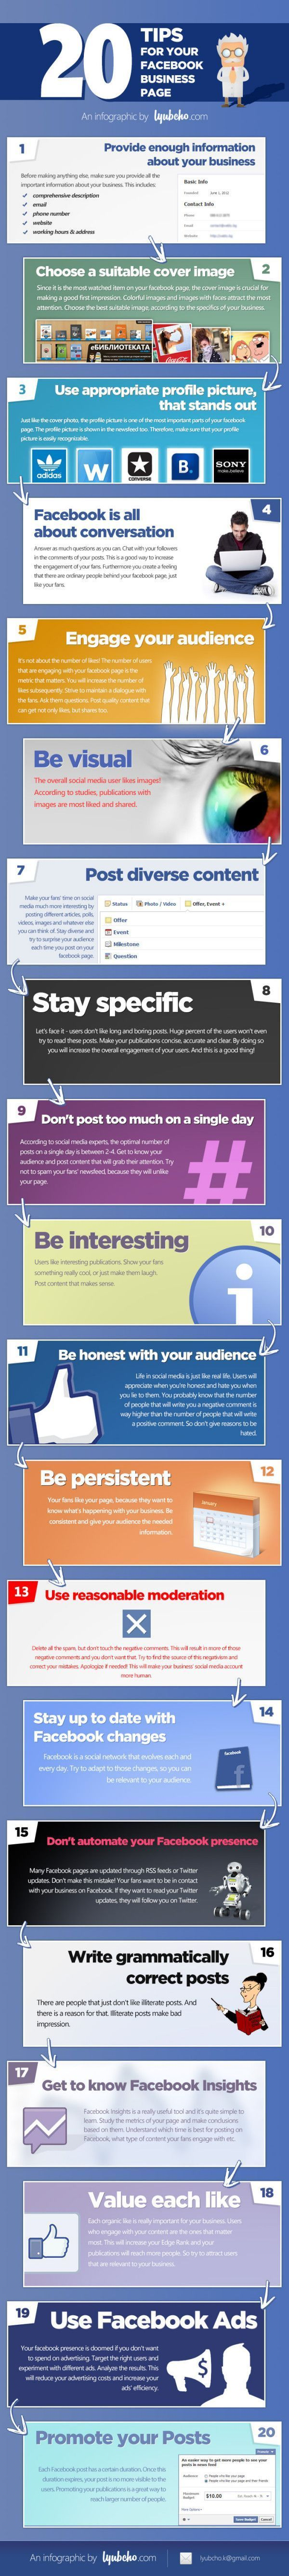 Get More Likes How to Get More Likes on a Facebook #Business Page. #startups#smallbiz www.sourcepep.com/80-20-blog/